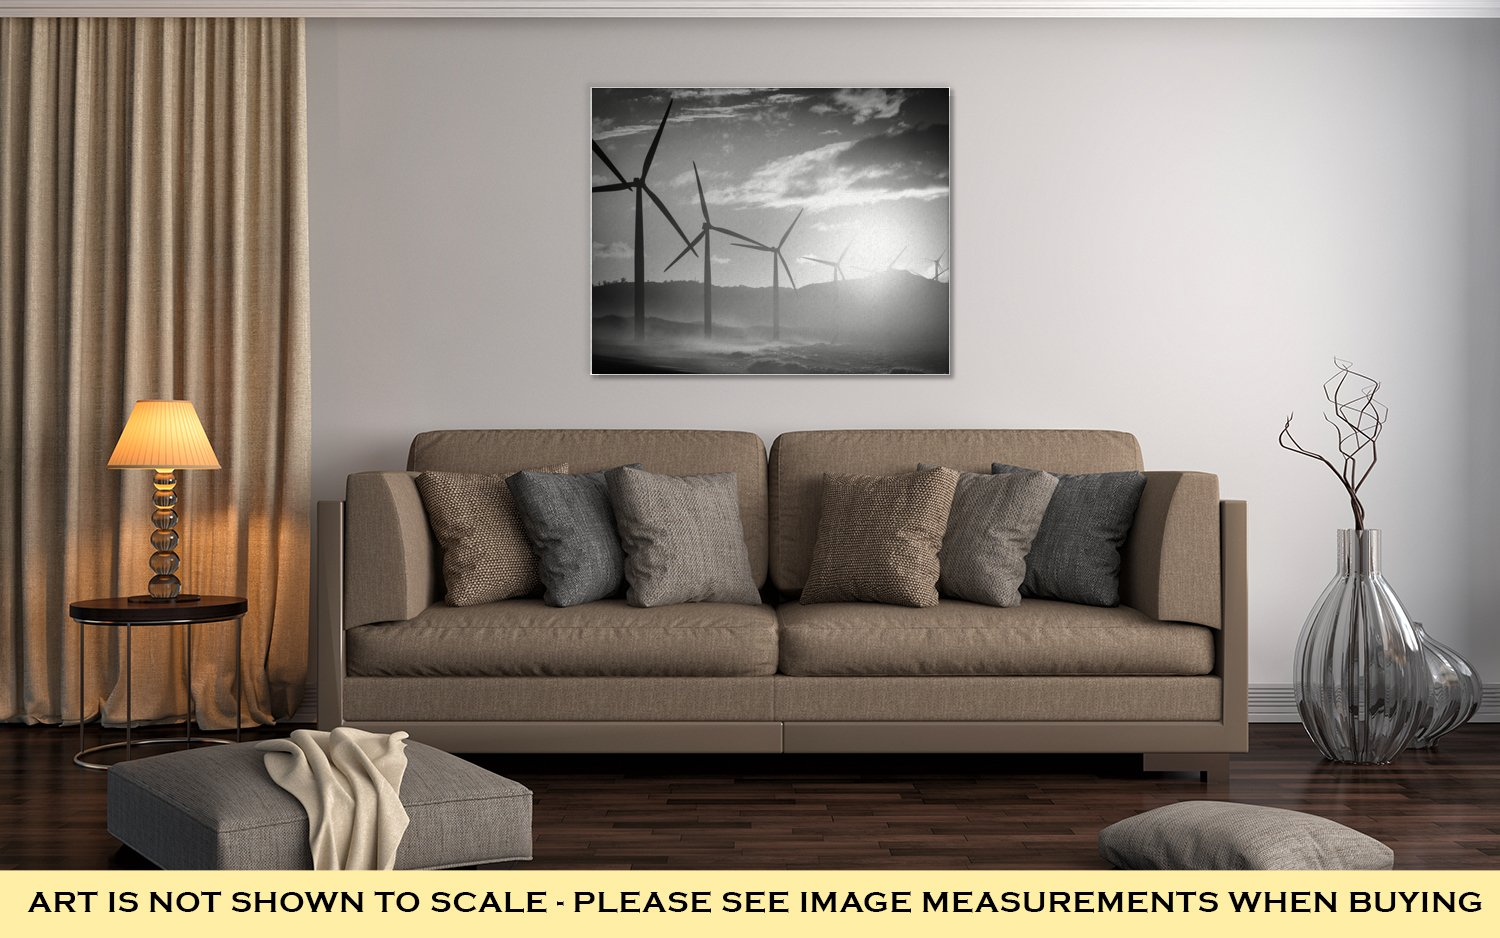 Ashley Canvas Wind Turbine Power Generators Silhouettes At Ocean Coastline At Sunset, Kitchen Bedroom Living Room Art, Black/White 24x30, AG5858548